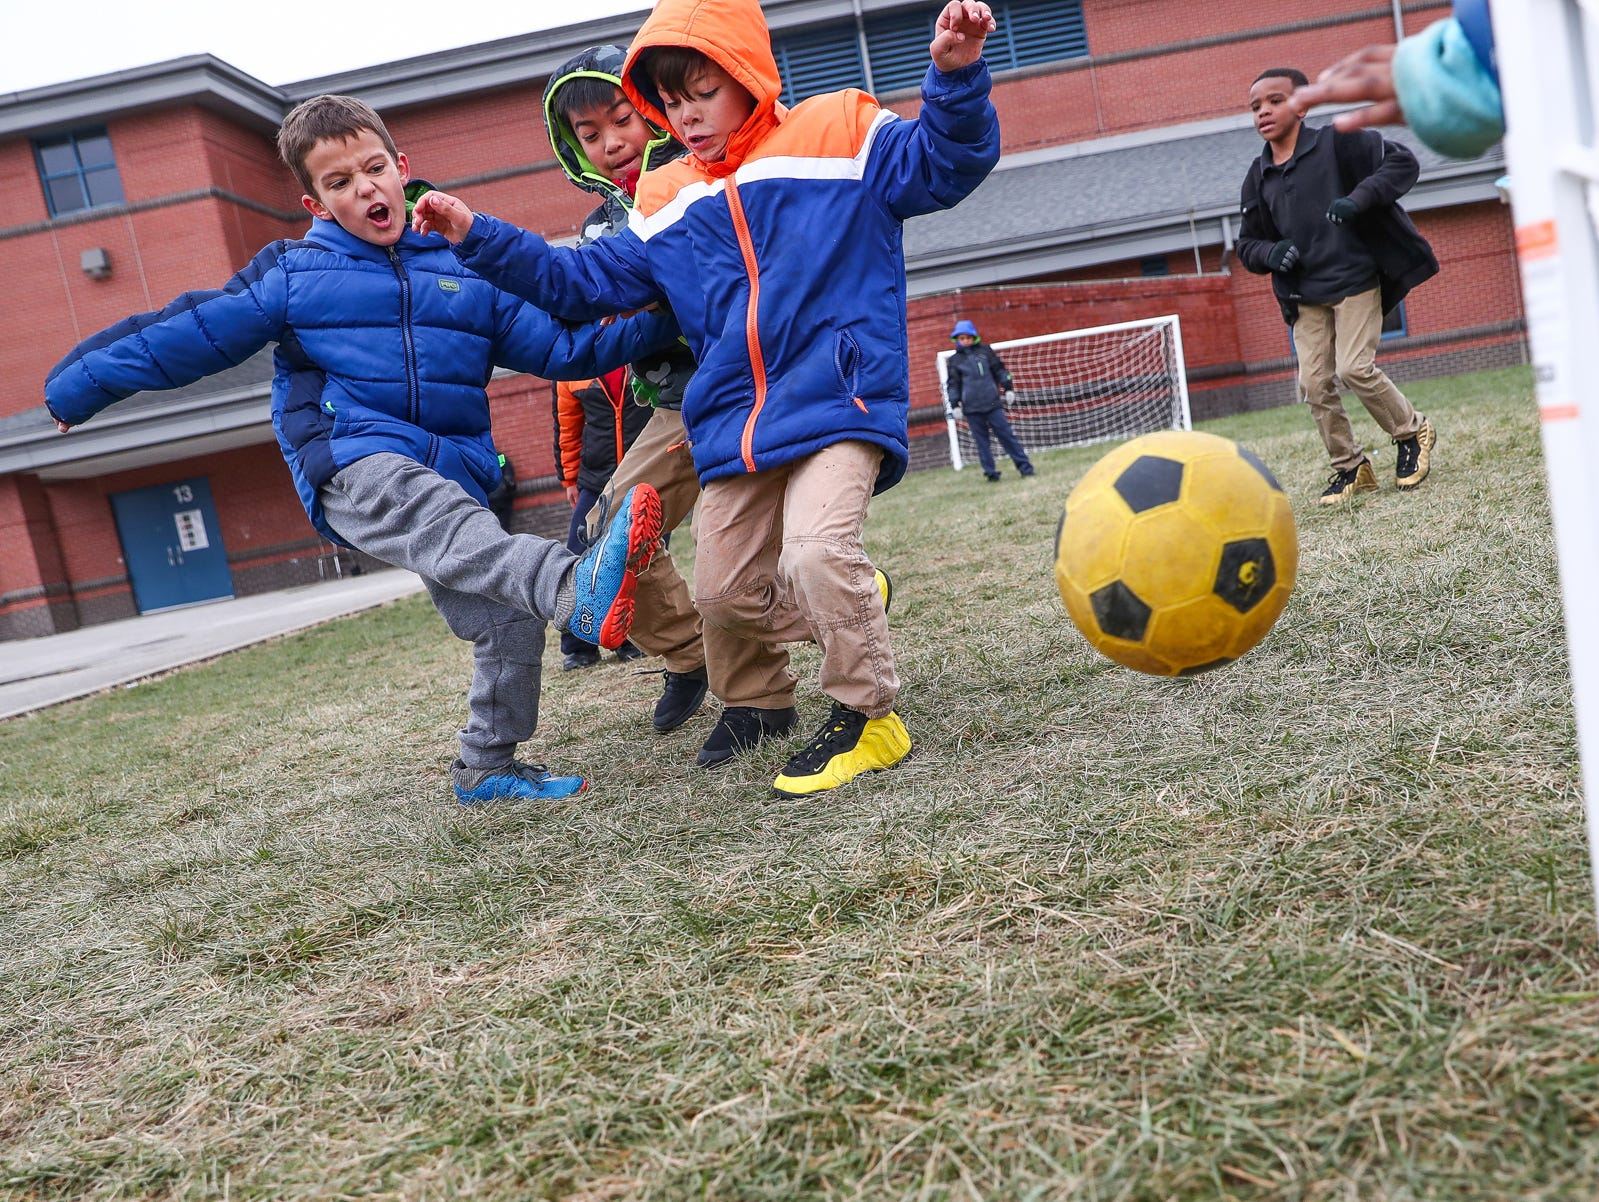 Brandon Romo shoots and scores during a game of soccer at Sunny Heights Elementary School on Friday, Nov. 16, 2018.